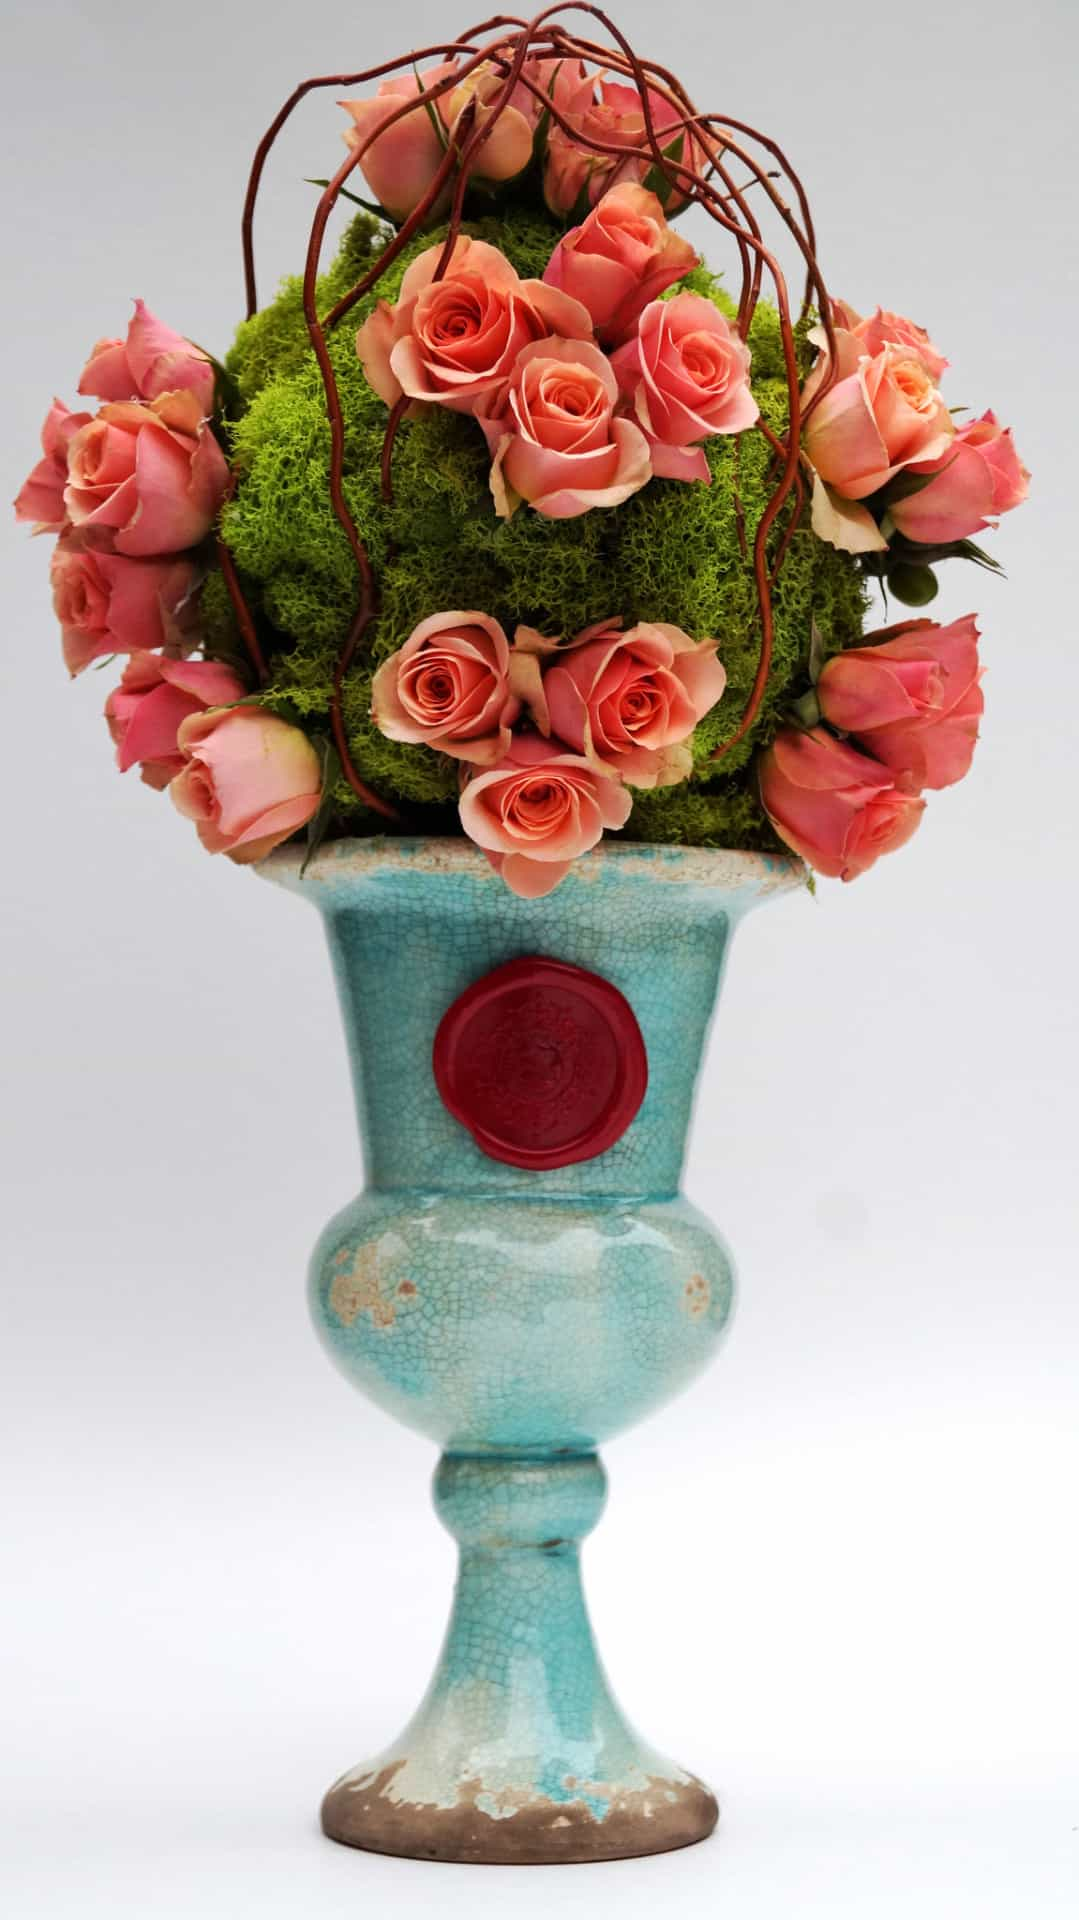 Peach rose topiary in a teal distressed urn with lime moss and curly